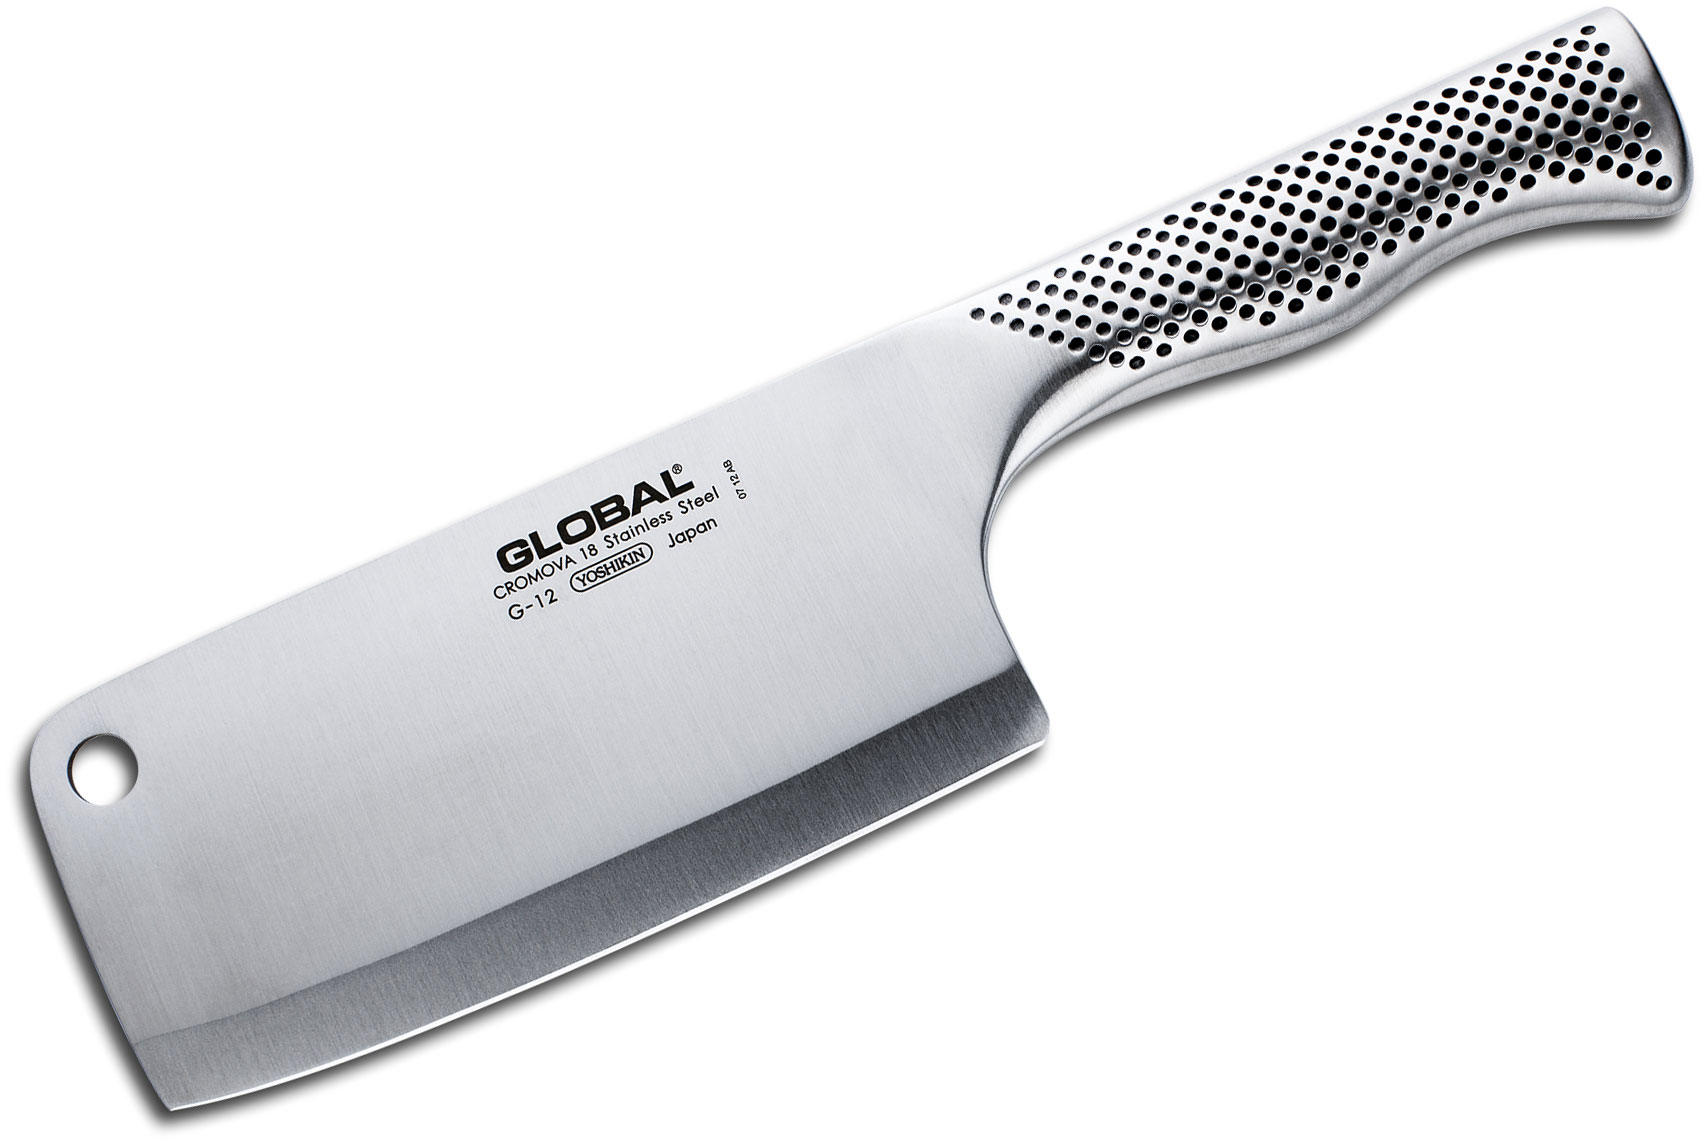 Global G 12 Classic 6 25 Meat Cleaver